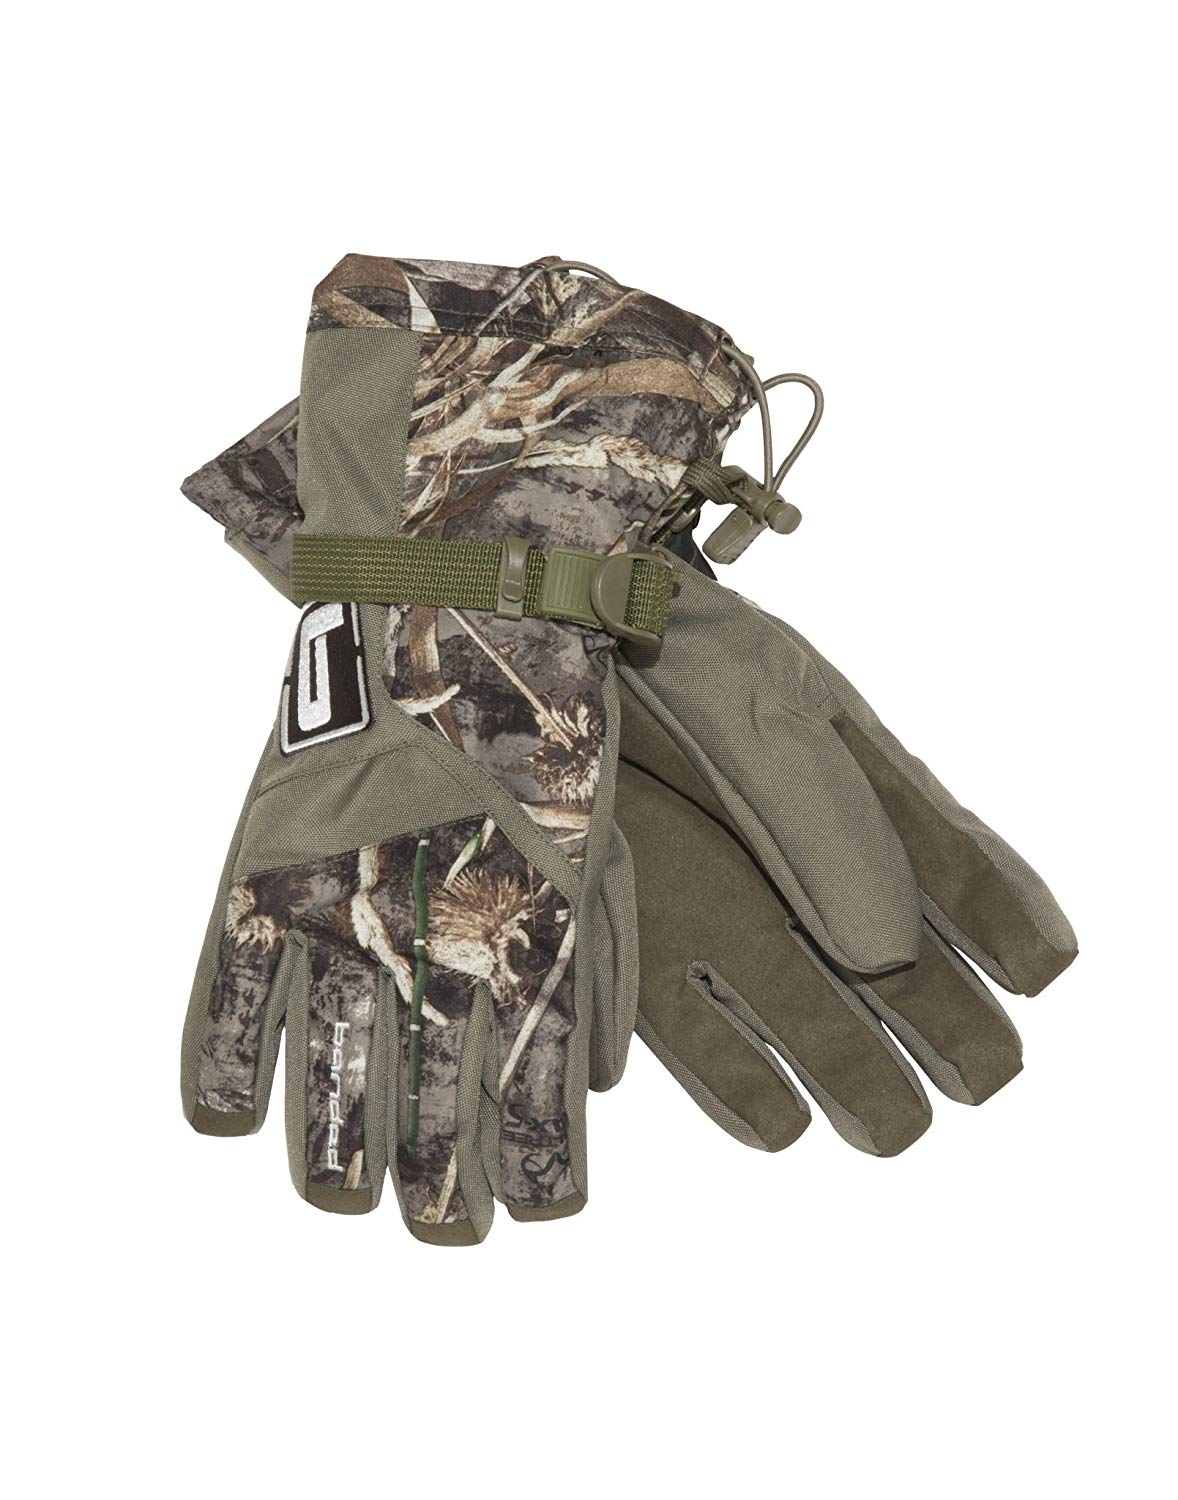 BANDED White River Insulated Glove